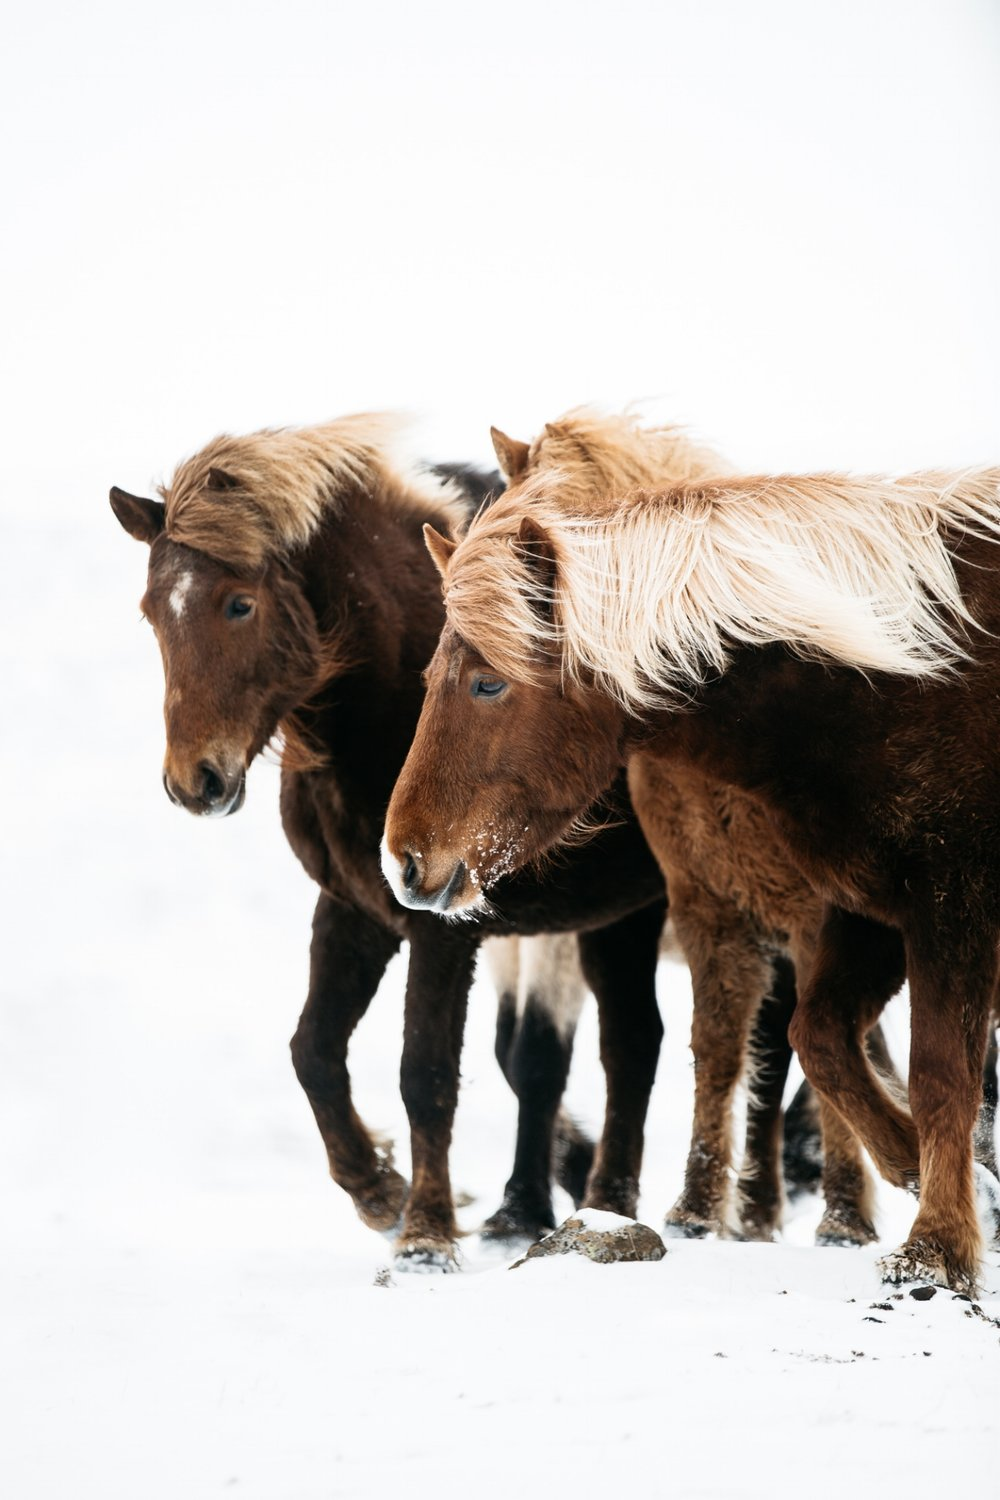 Two icelandic horses in the snow in iceland